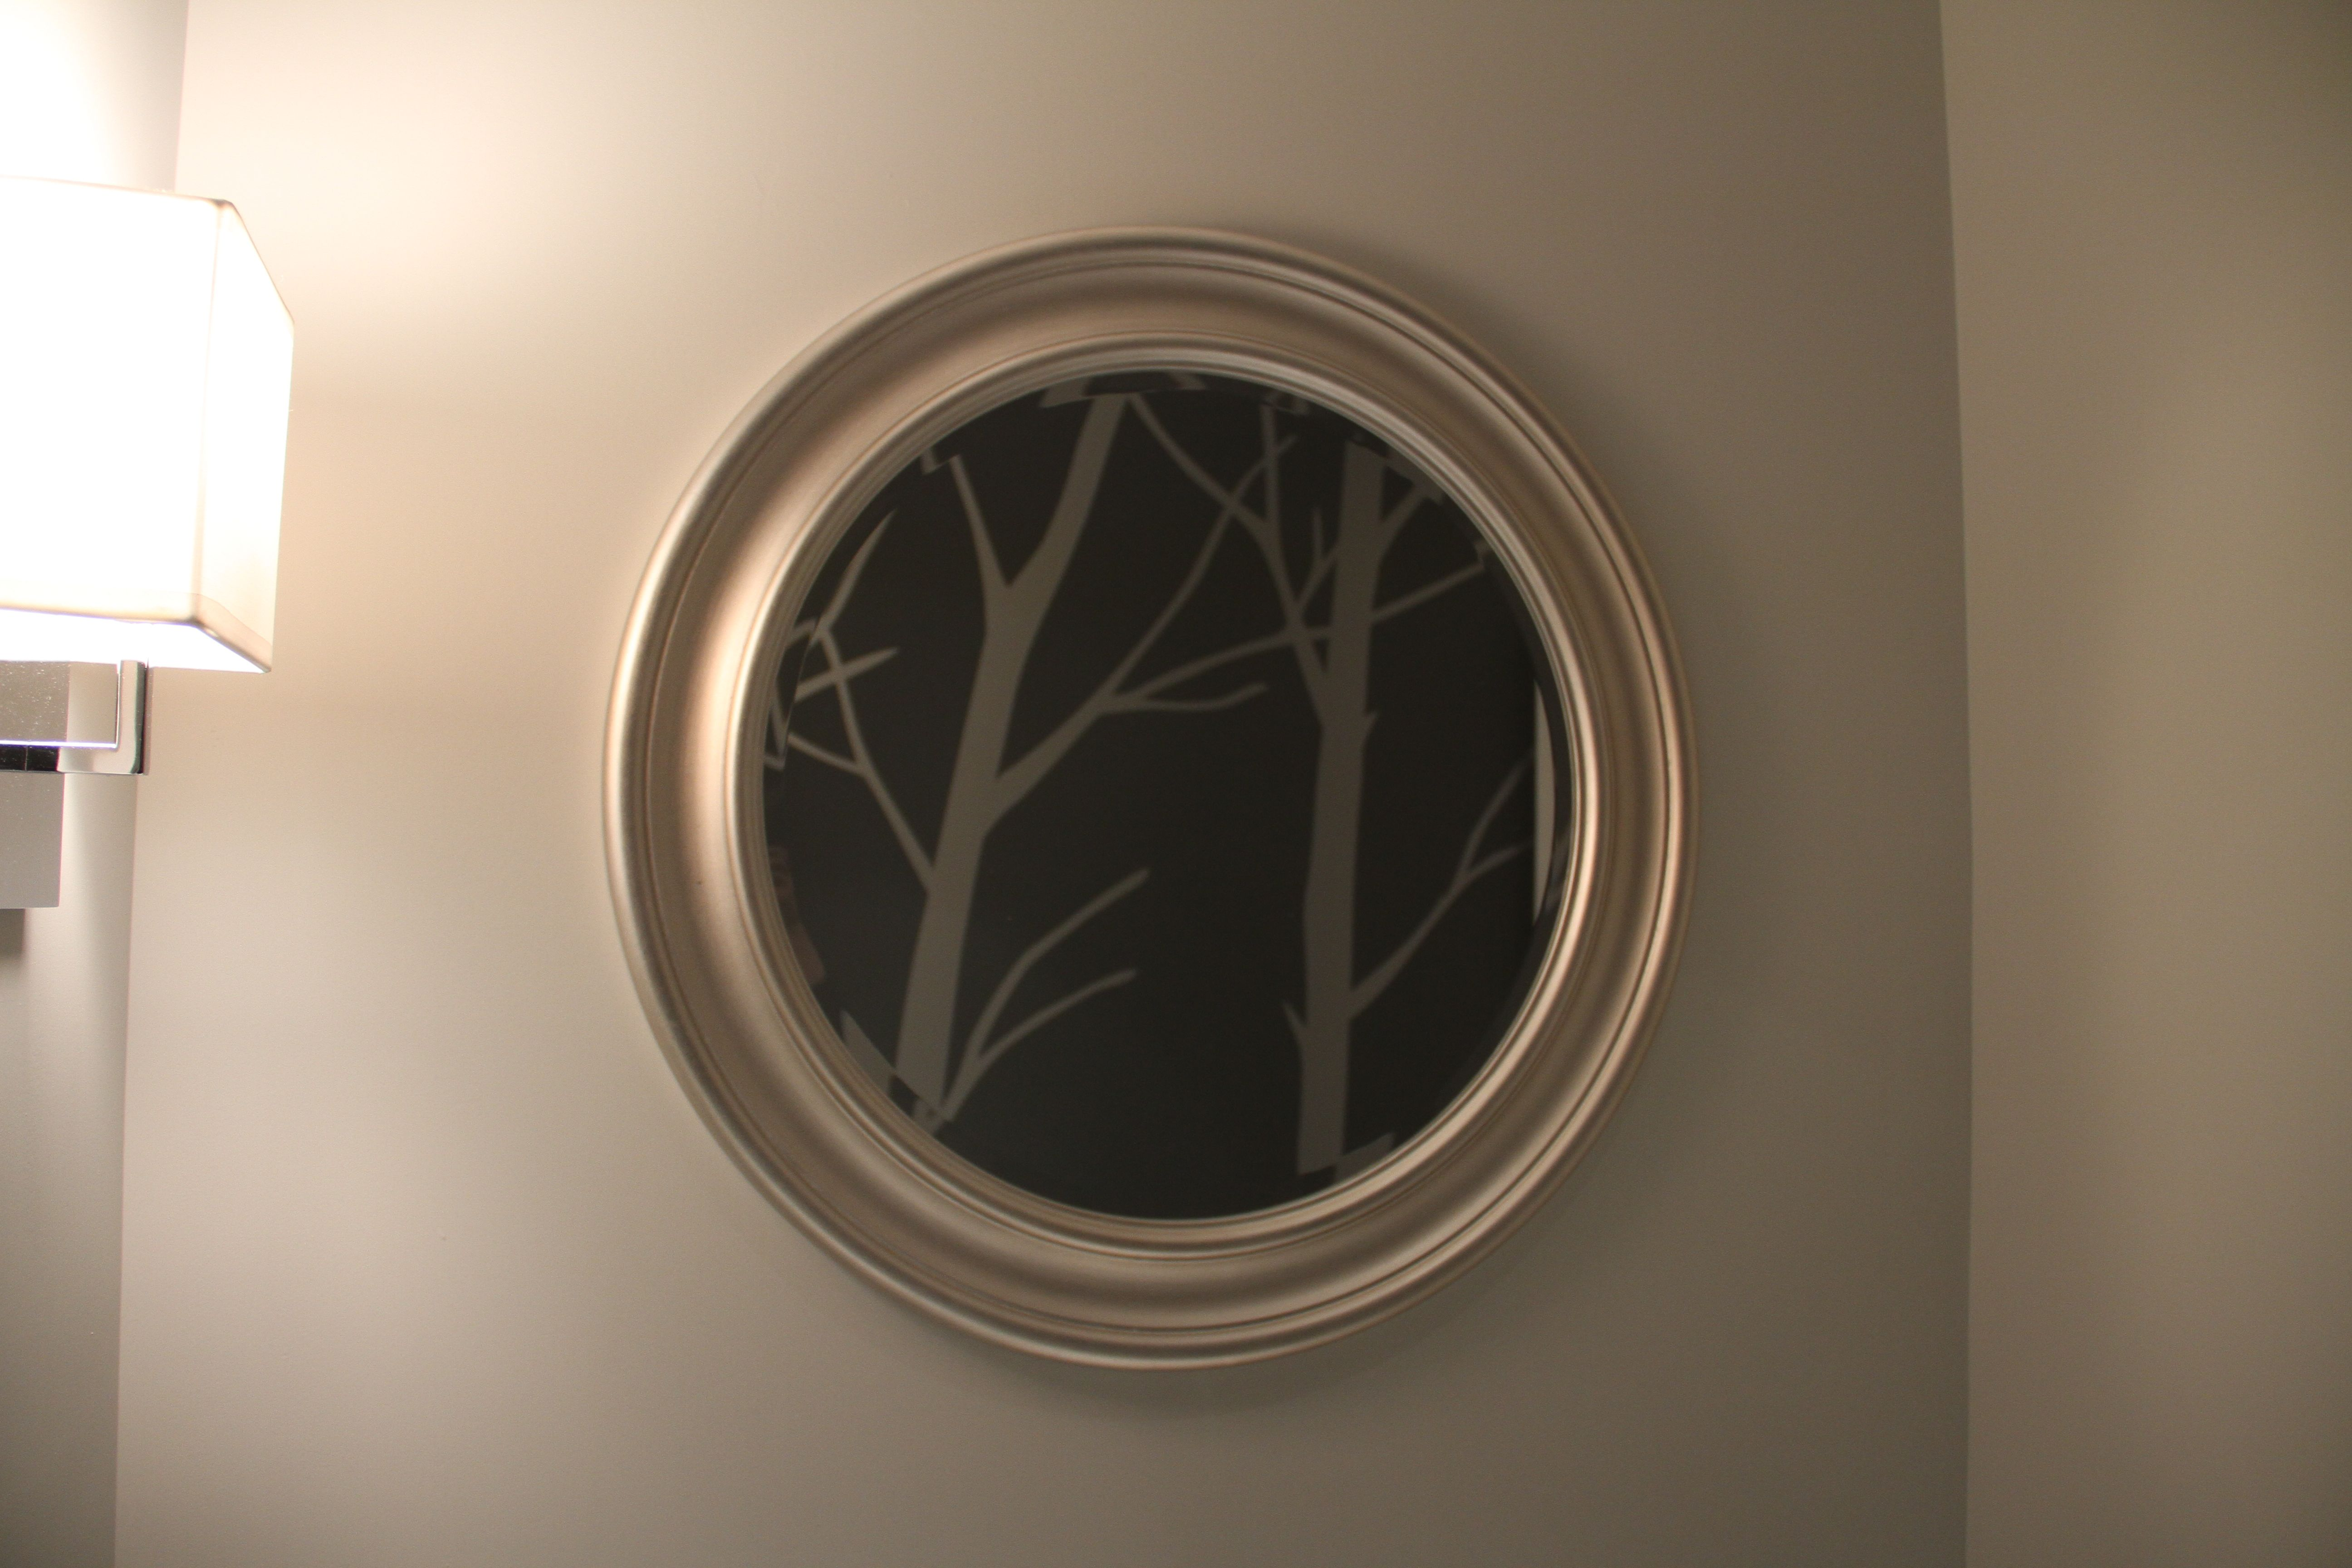 I like how the mirror turns into a little piece of art. And if you're standing there washing your hands, or freshening up, you can see out the window through the mirror, too, to all the giant maple trees in the surrounding yards.